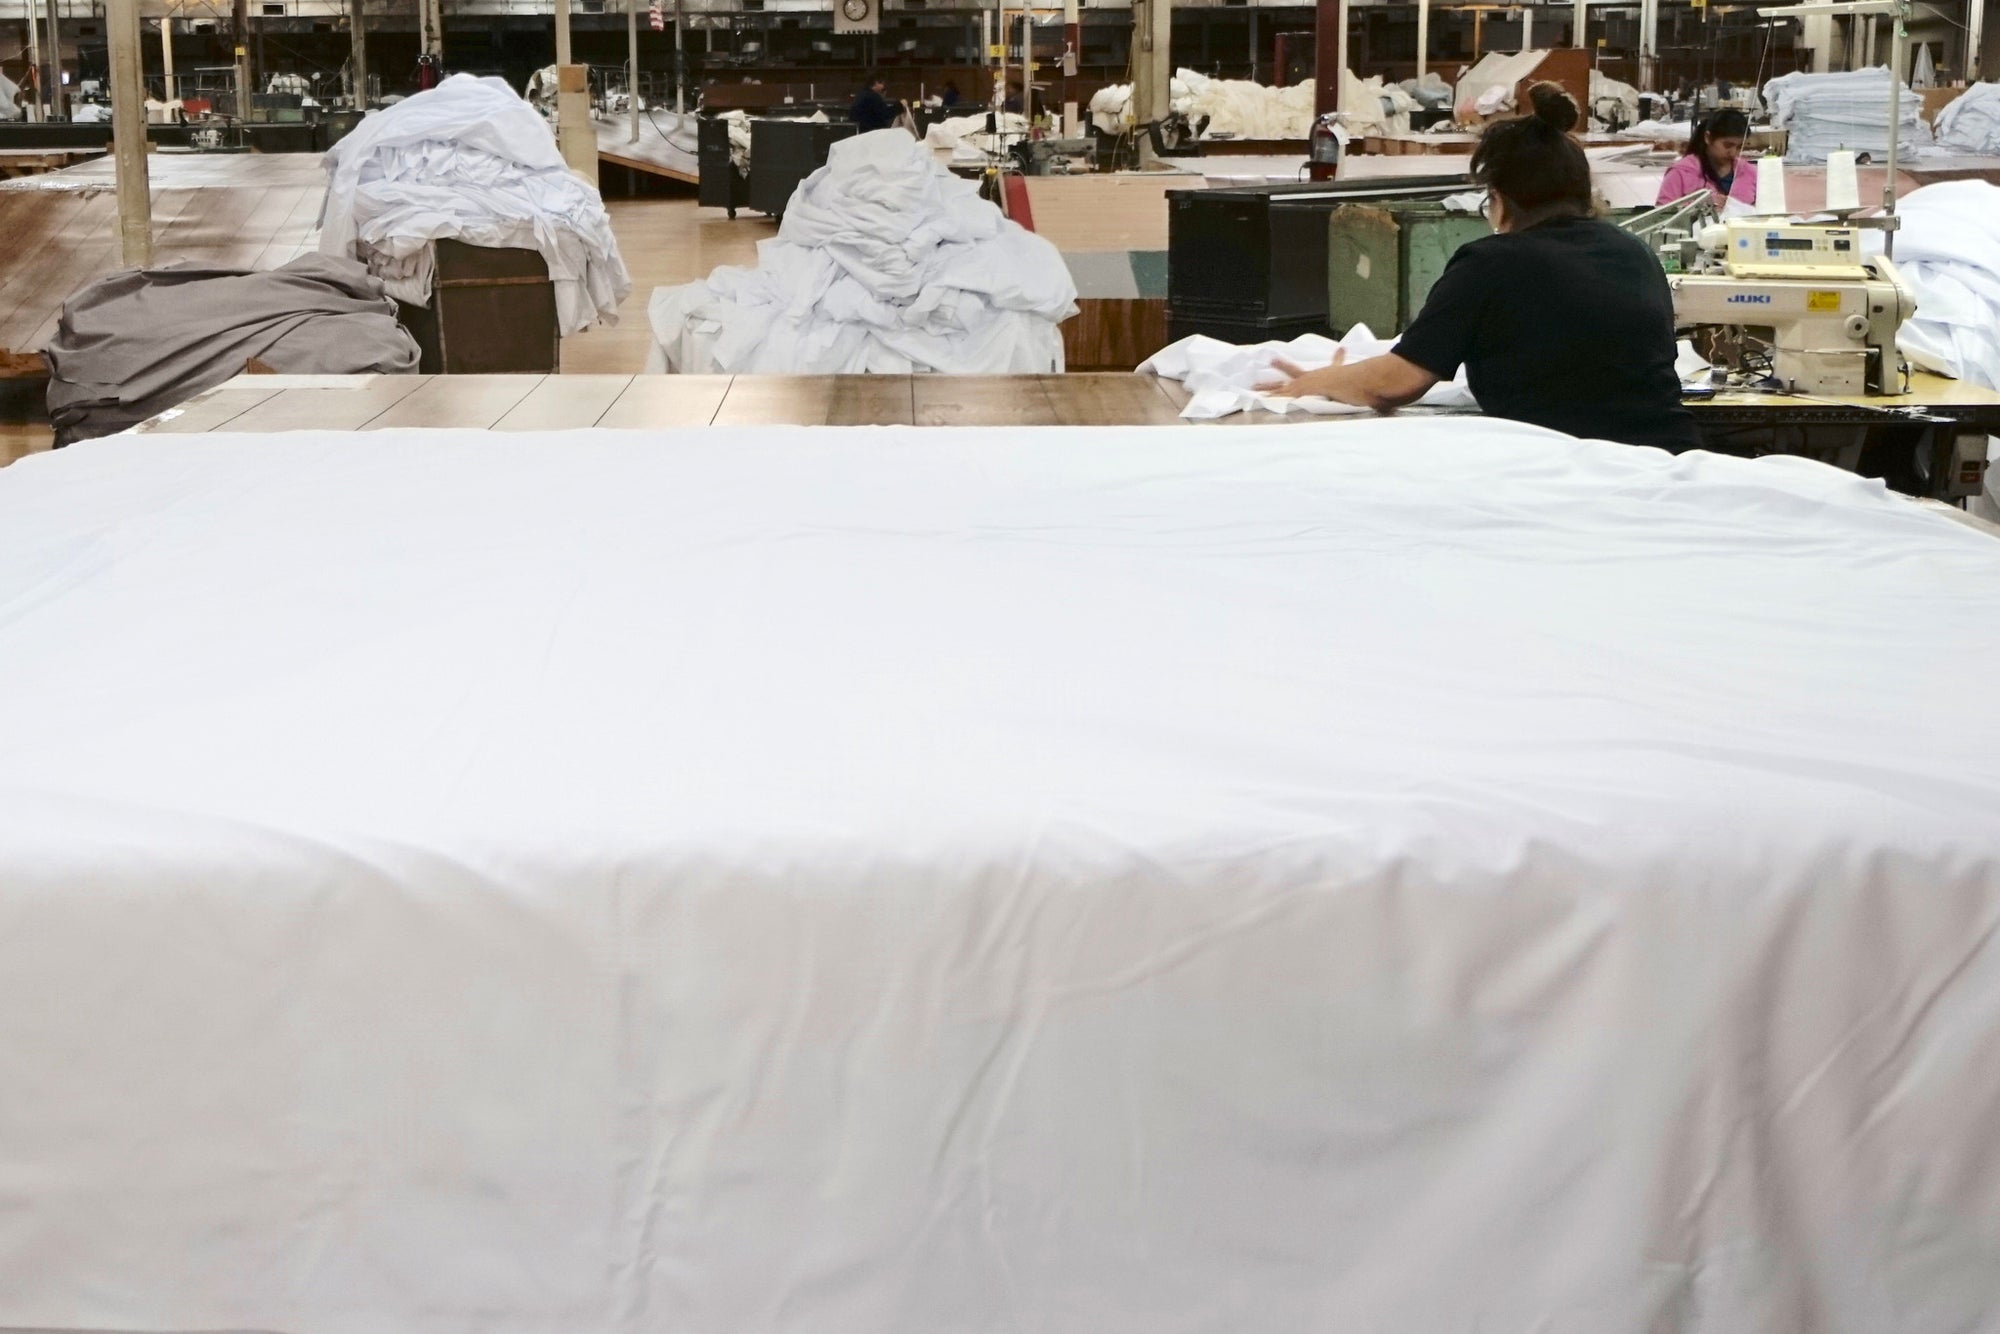 Manufacturer Series: Who wants a set of premium linens sewn in America?